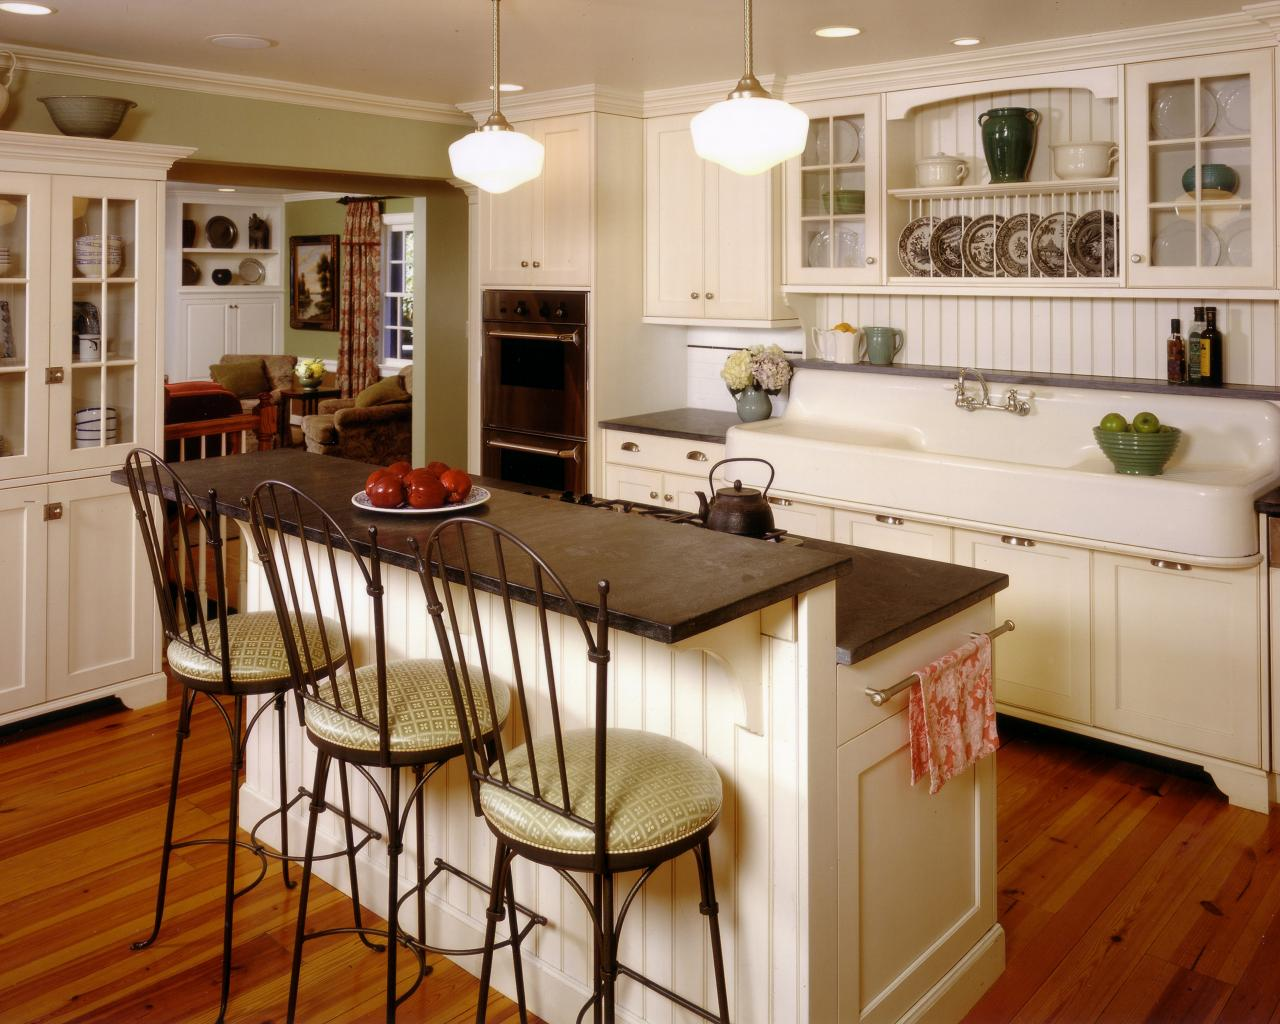 New country kitchen ideas 12 cozy cottage kitchens rwboqtj